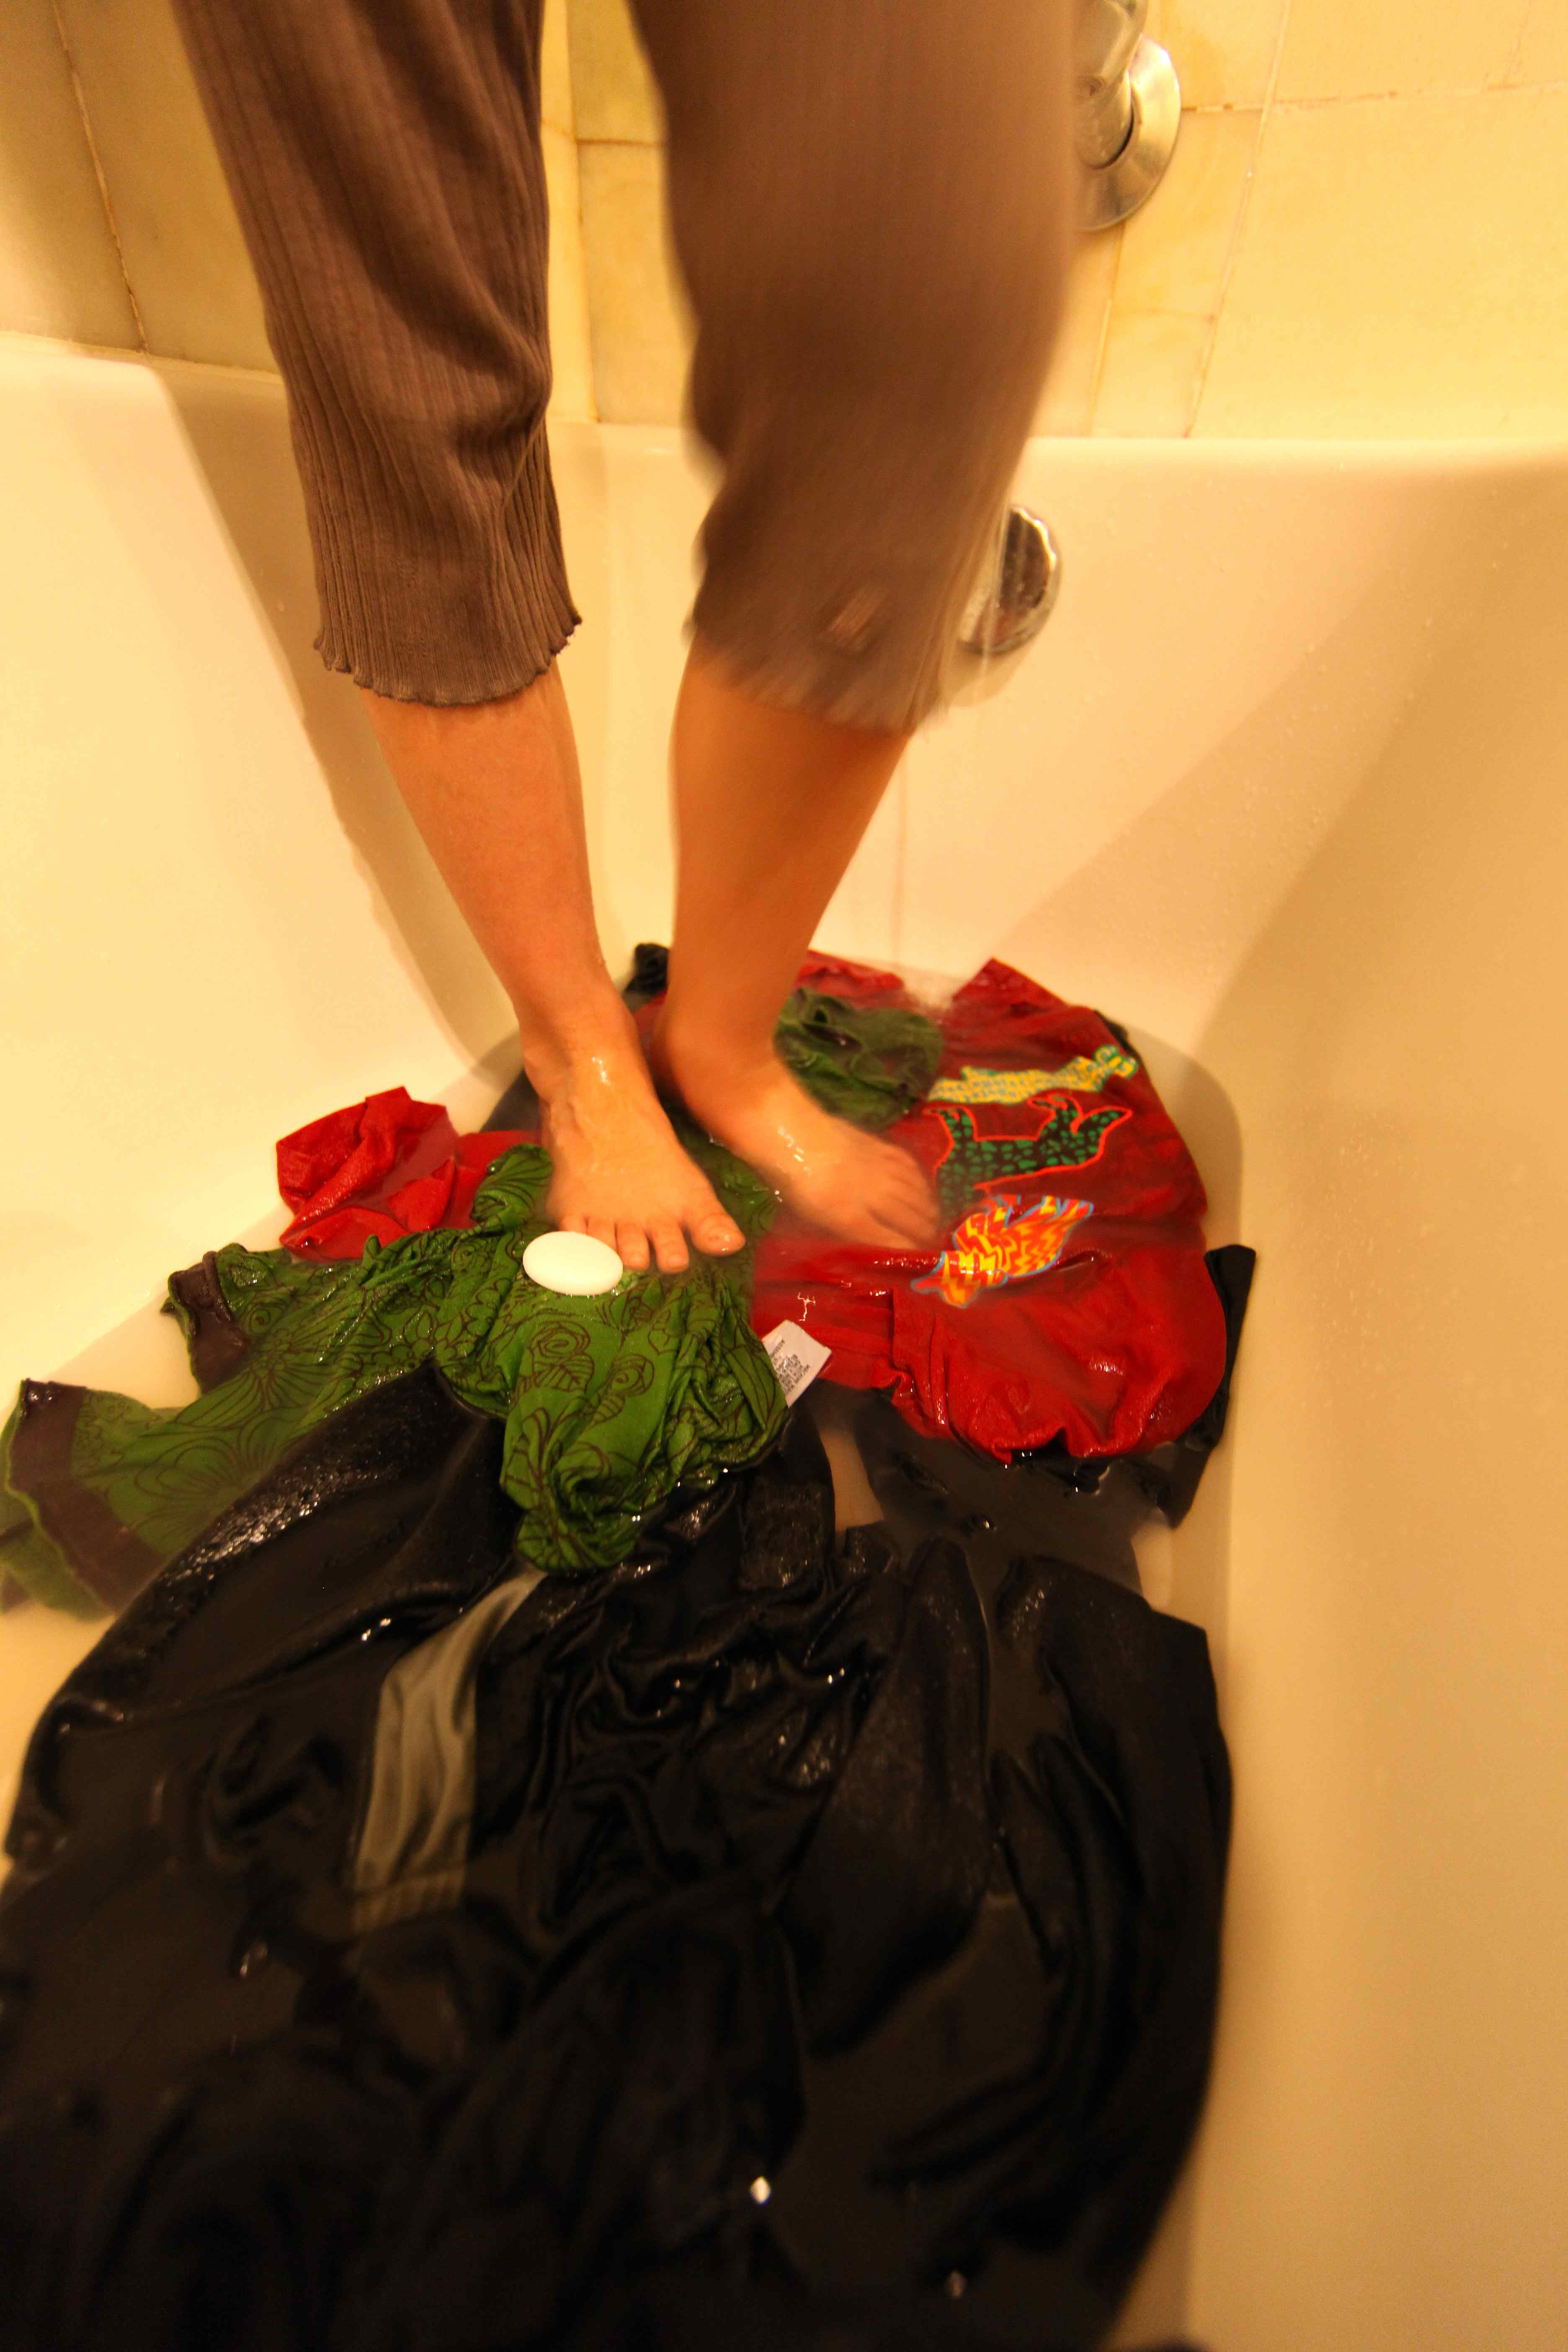 How To Wash Clothes In A Bathtub Pioneering The Simple Life - Easy way to clean tub